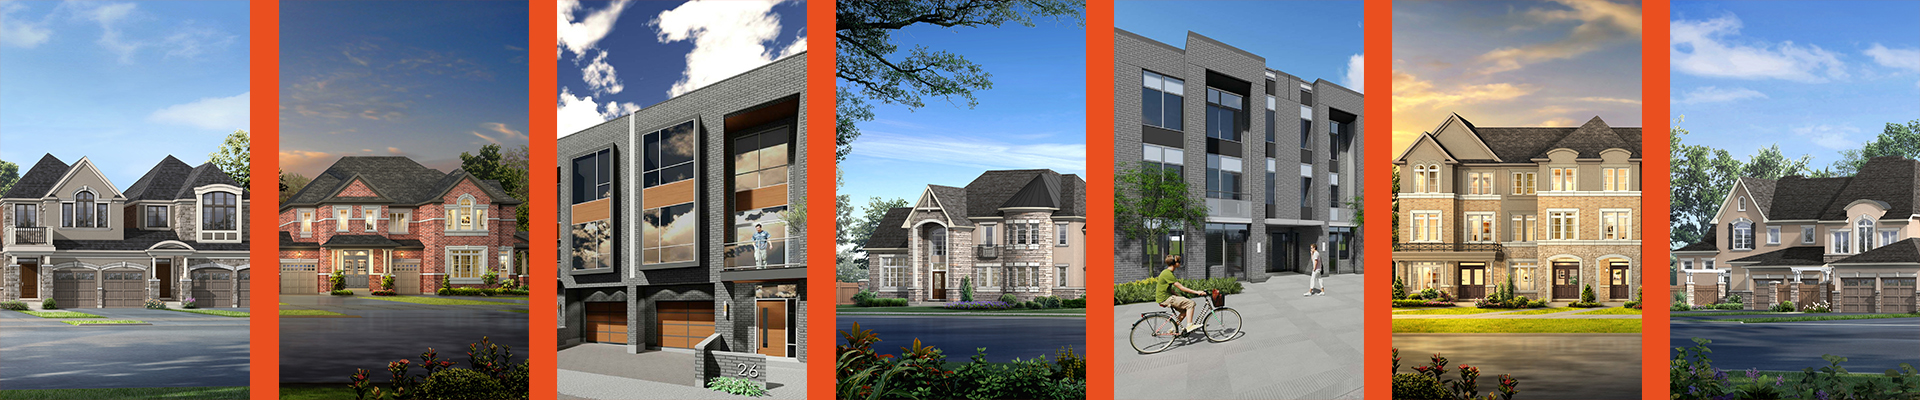 Korsiak Urban Planning - Low Rise Development Portfolio